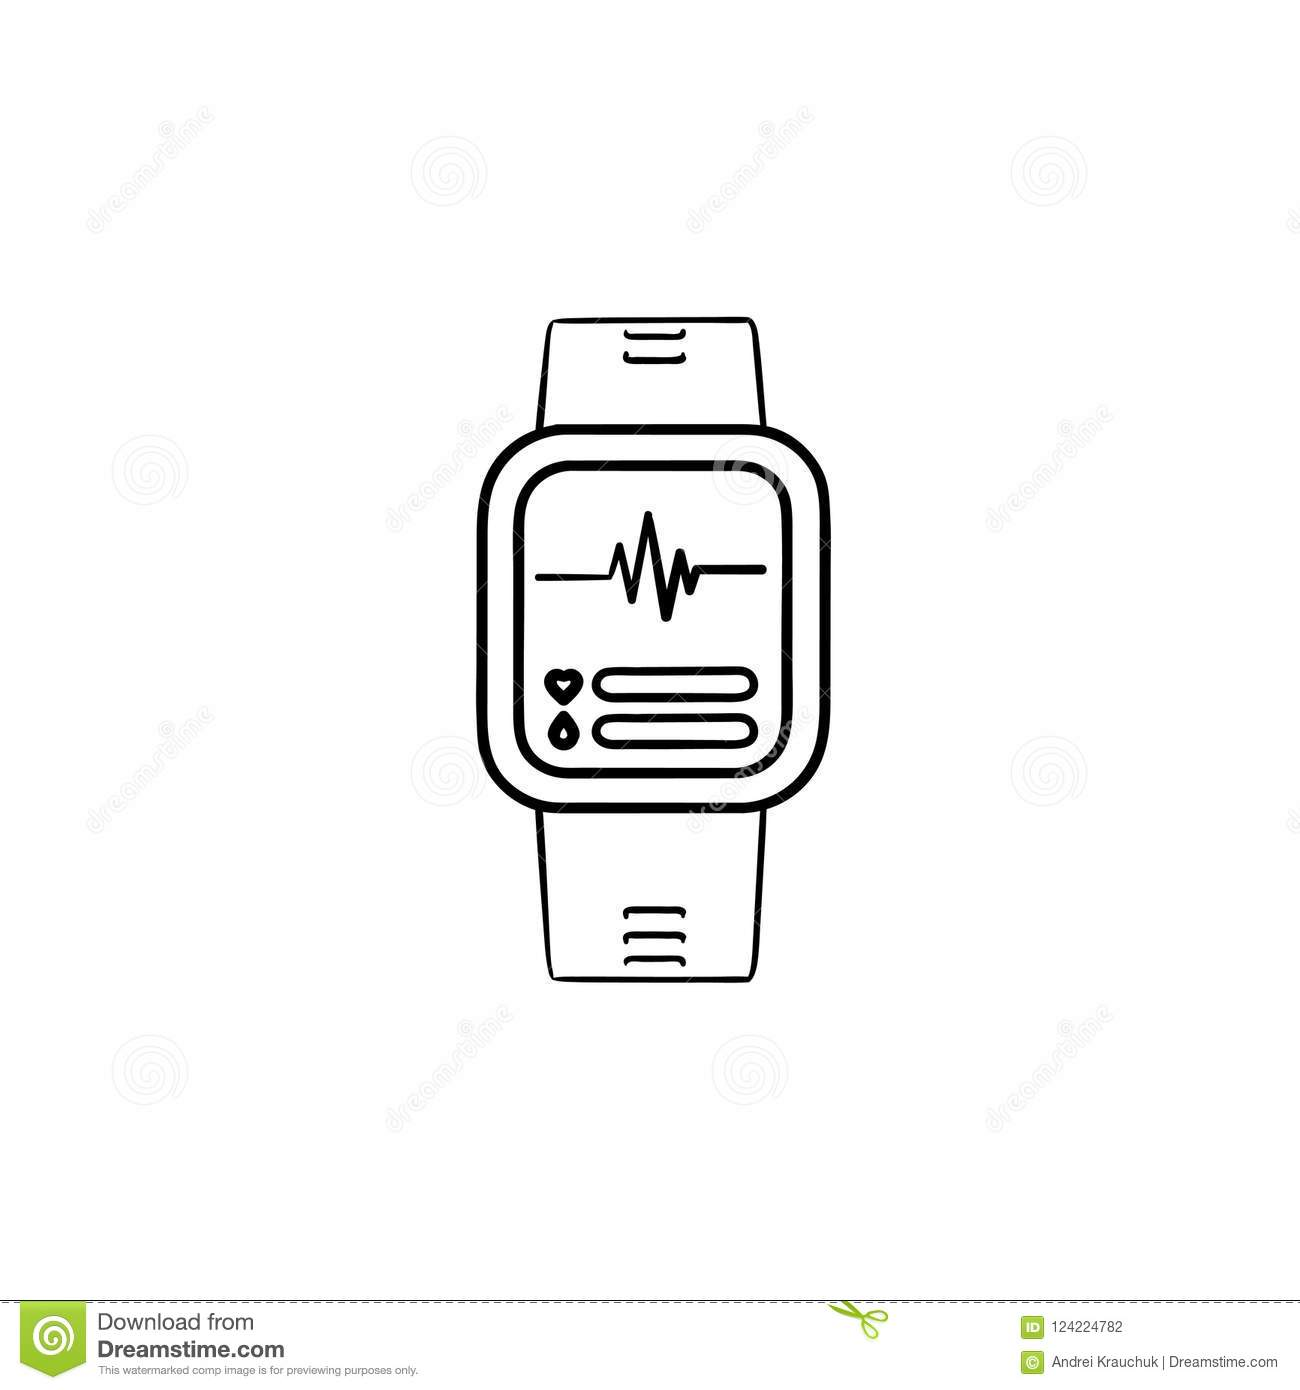 Smartwatch Hand Drawn Outline Doodle Icon. Stock Vector